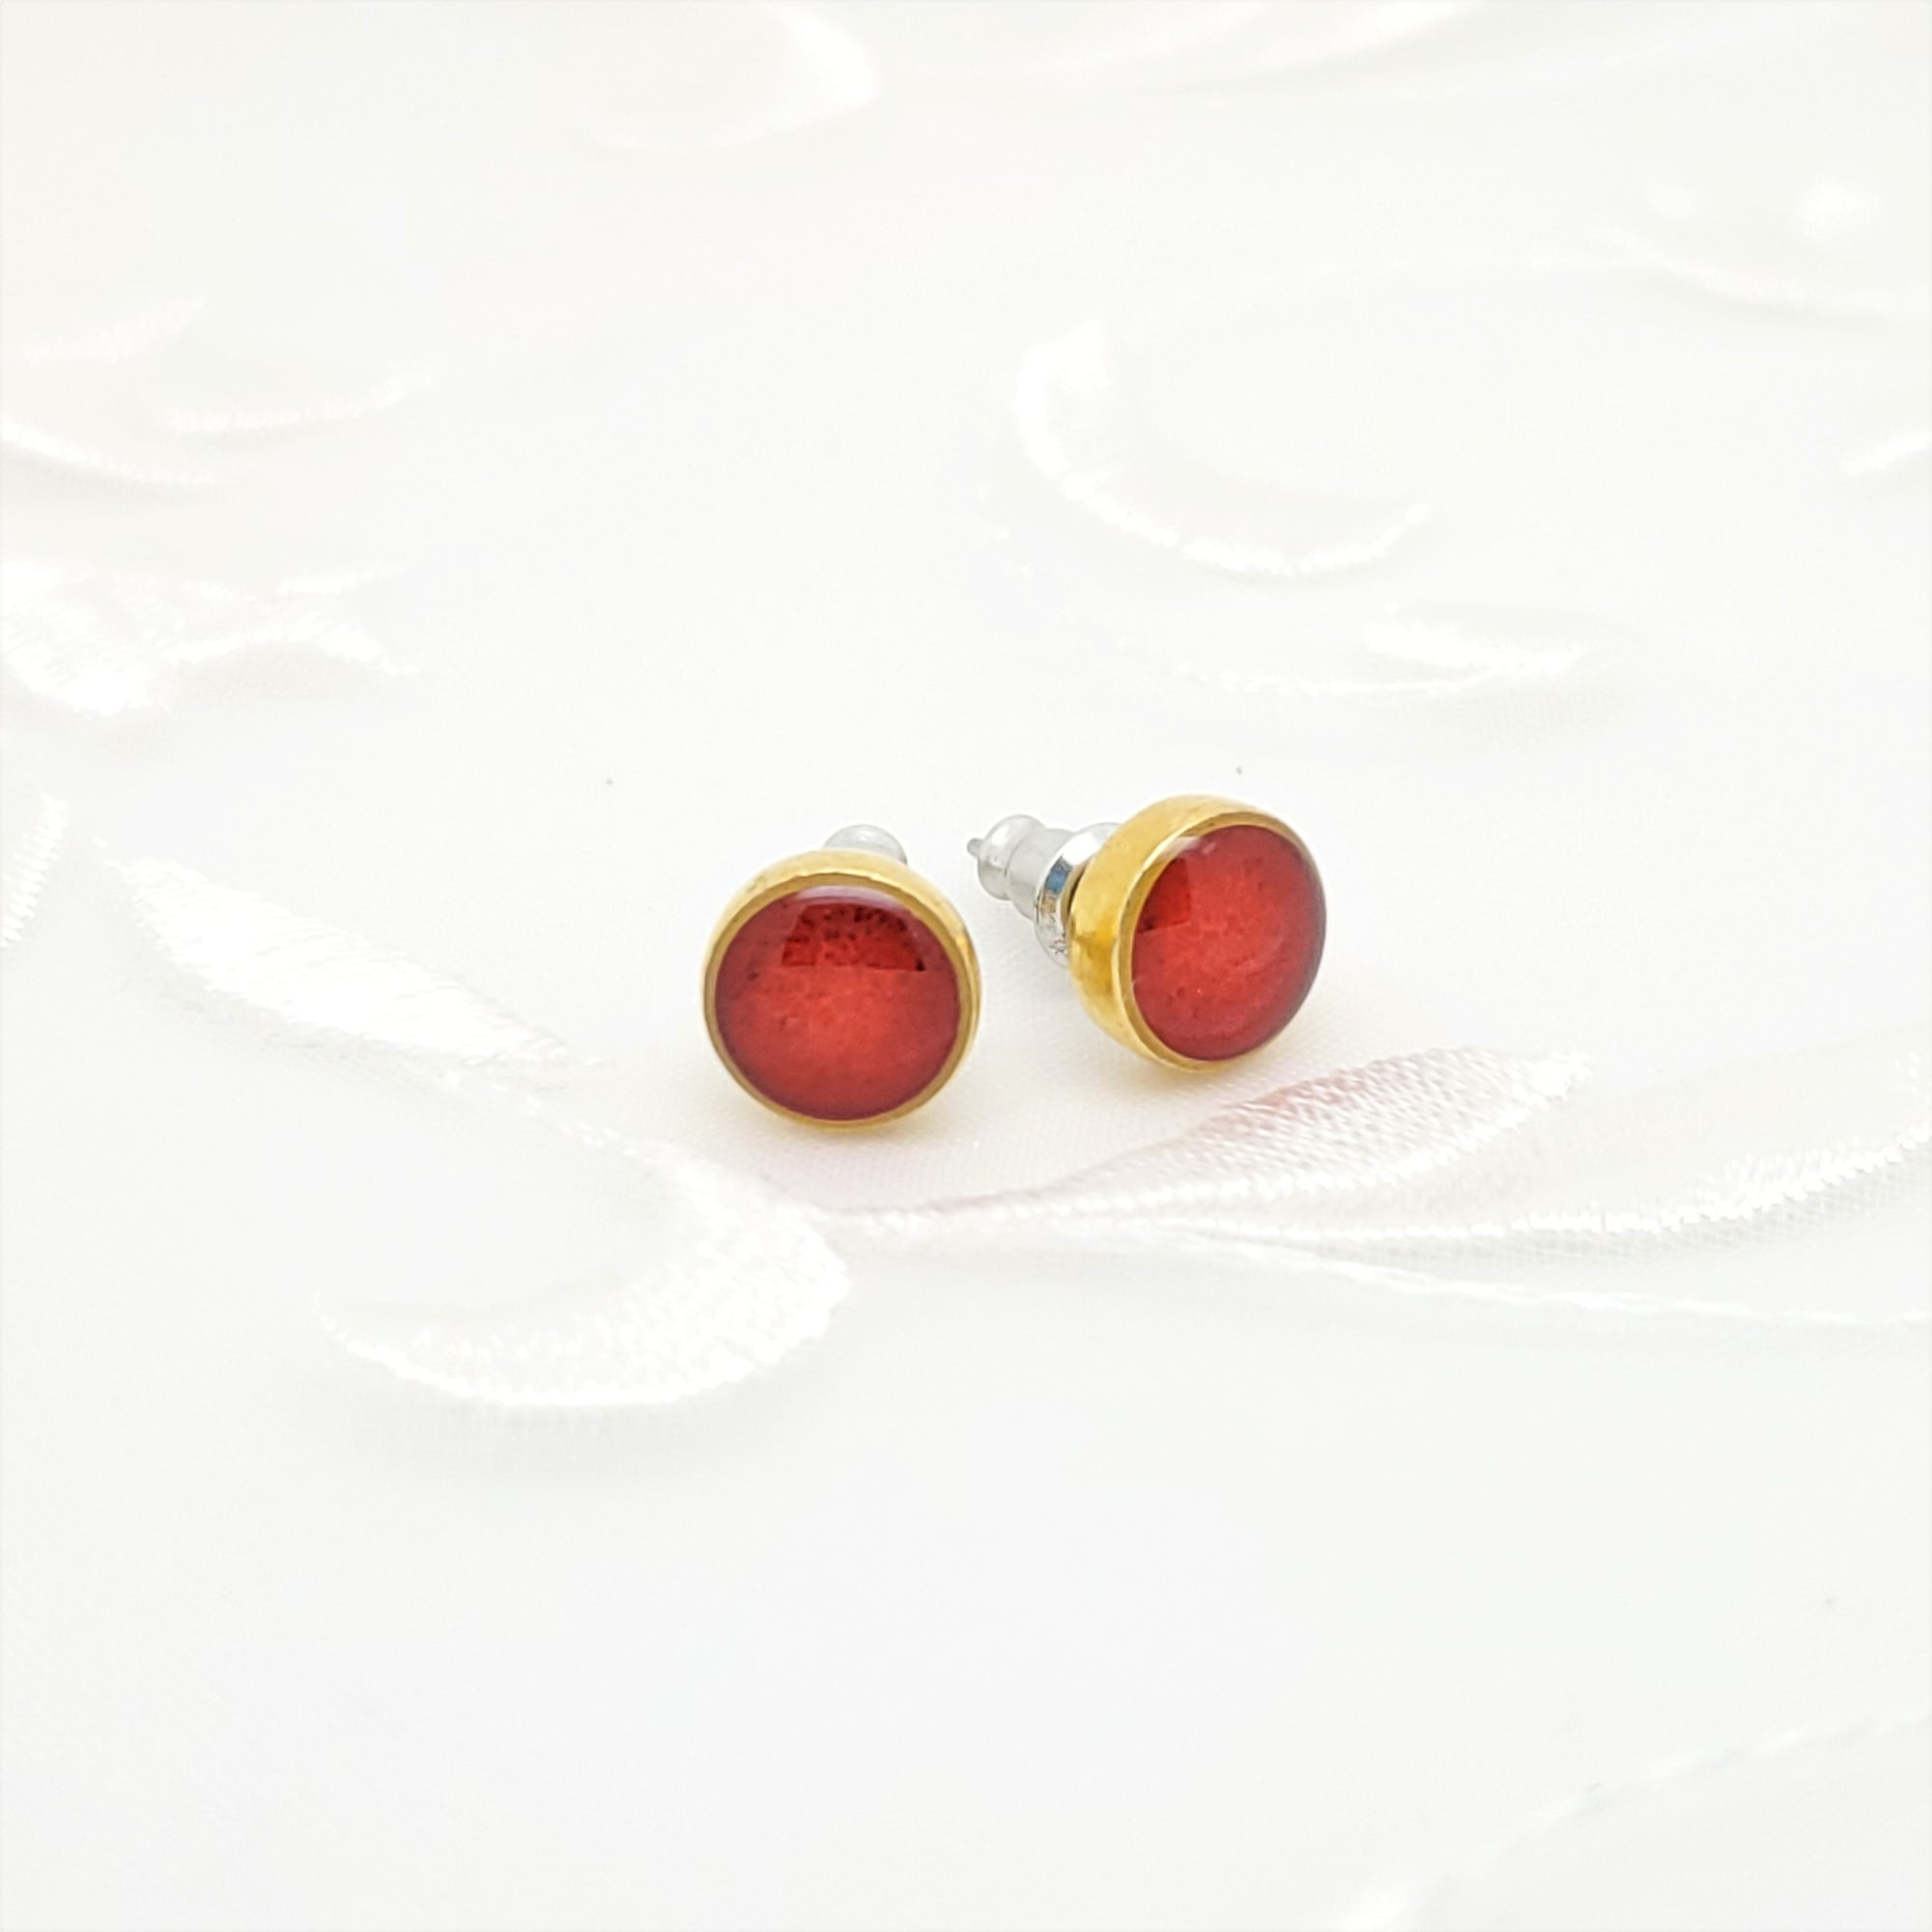 Antique Gold Round Stud Earrings with Transparent Red Resin